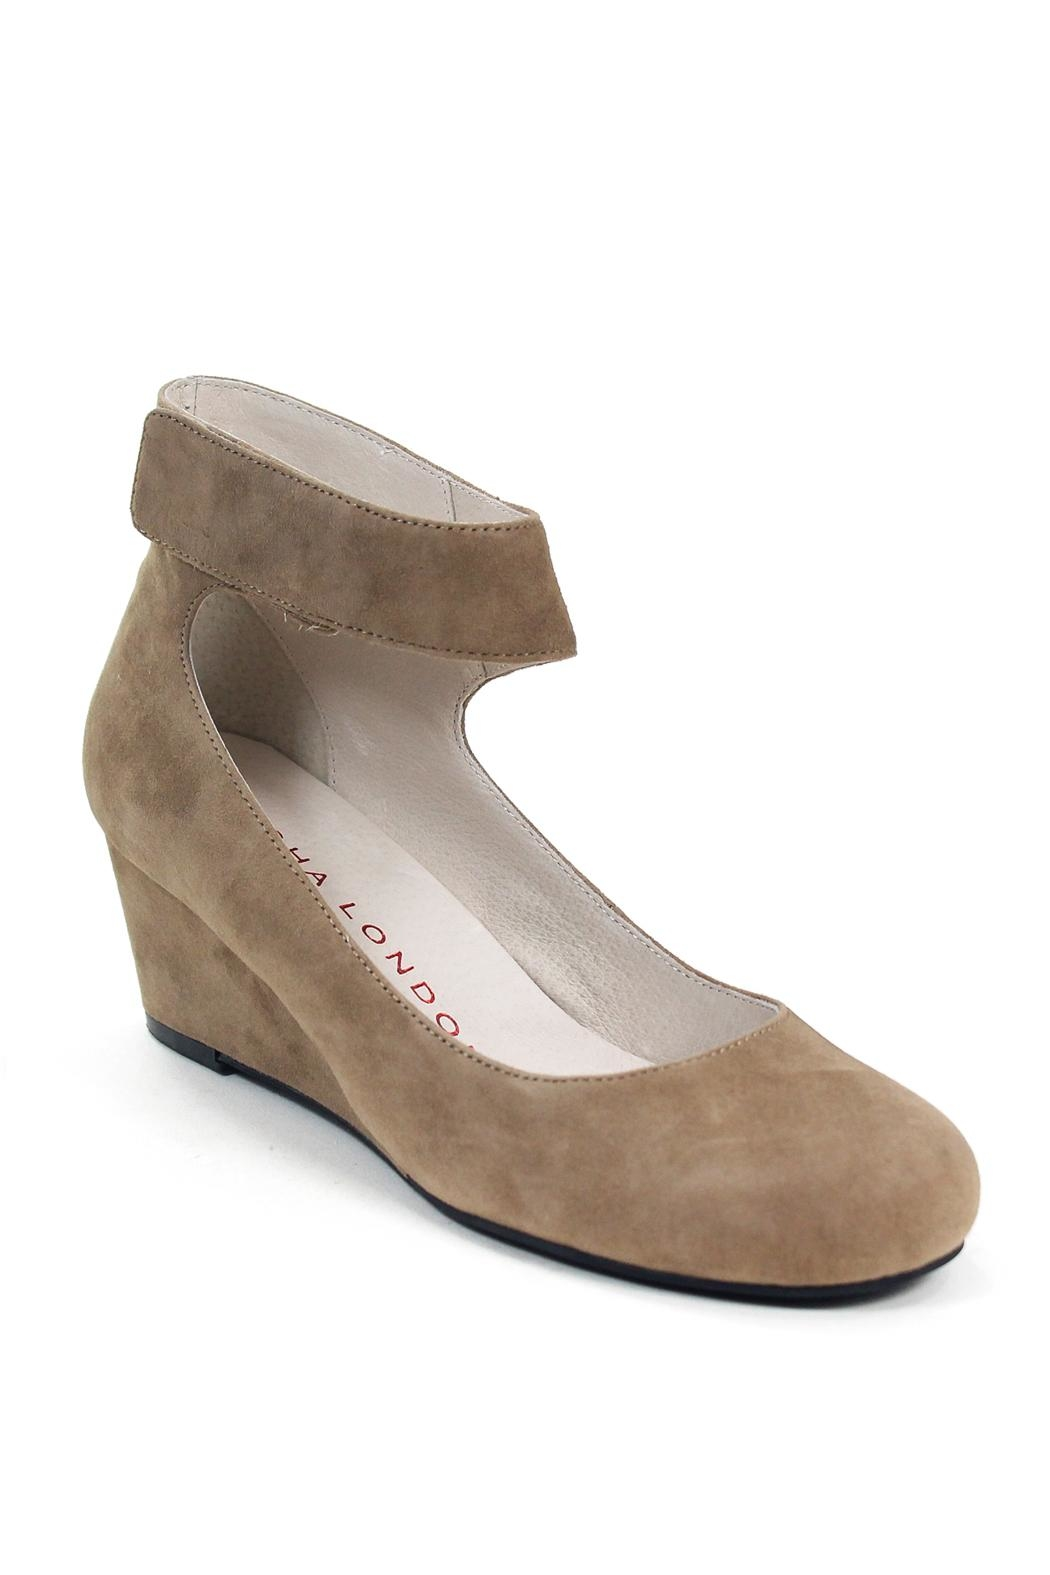 Sacha London Vespa Suede Wedge - Front Full Image